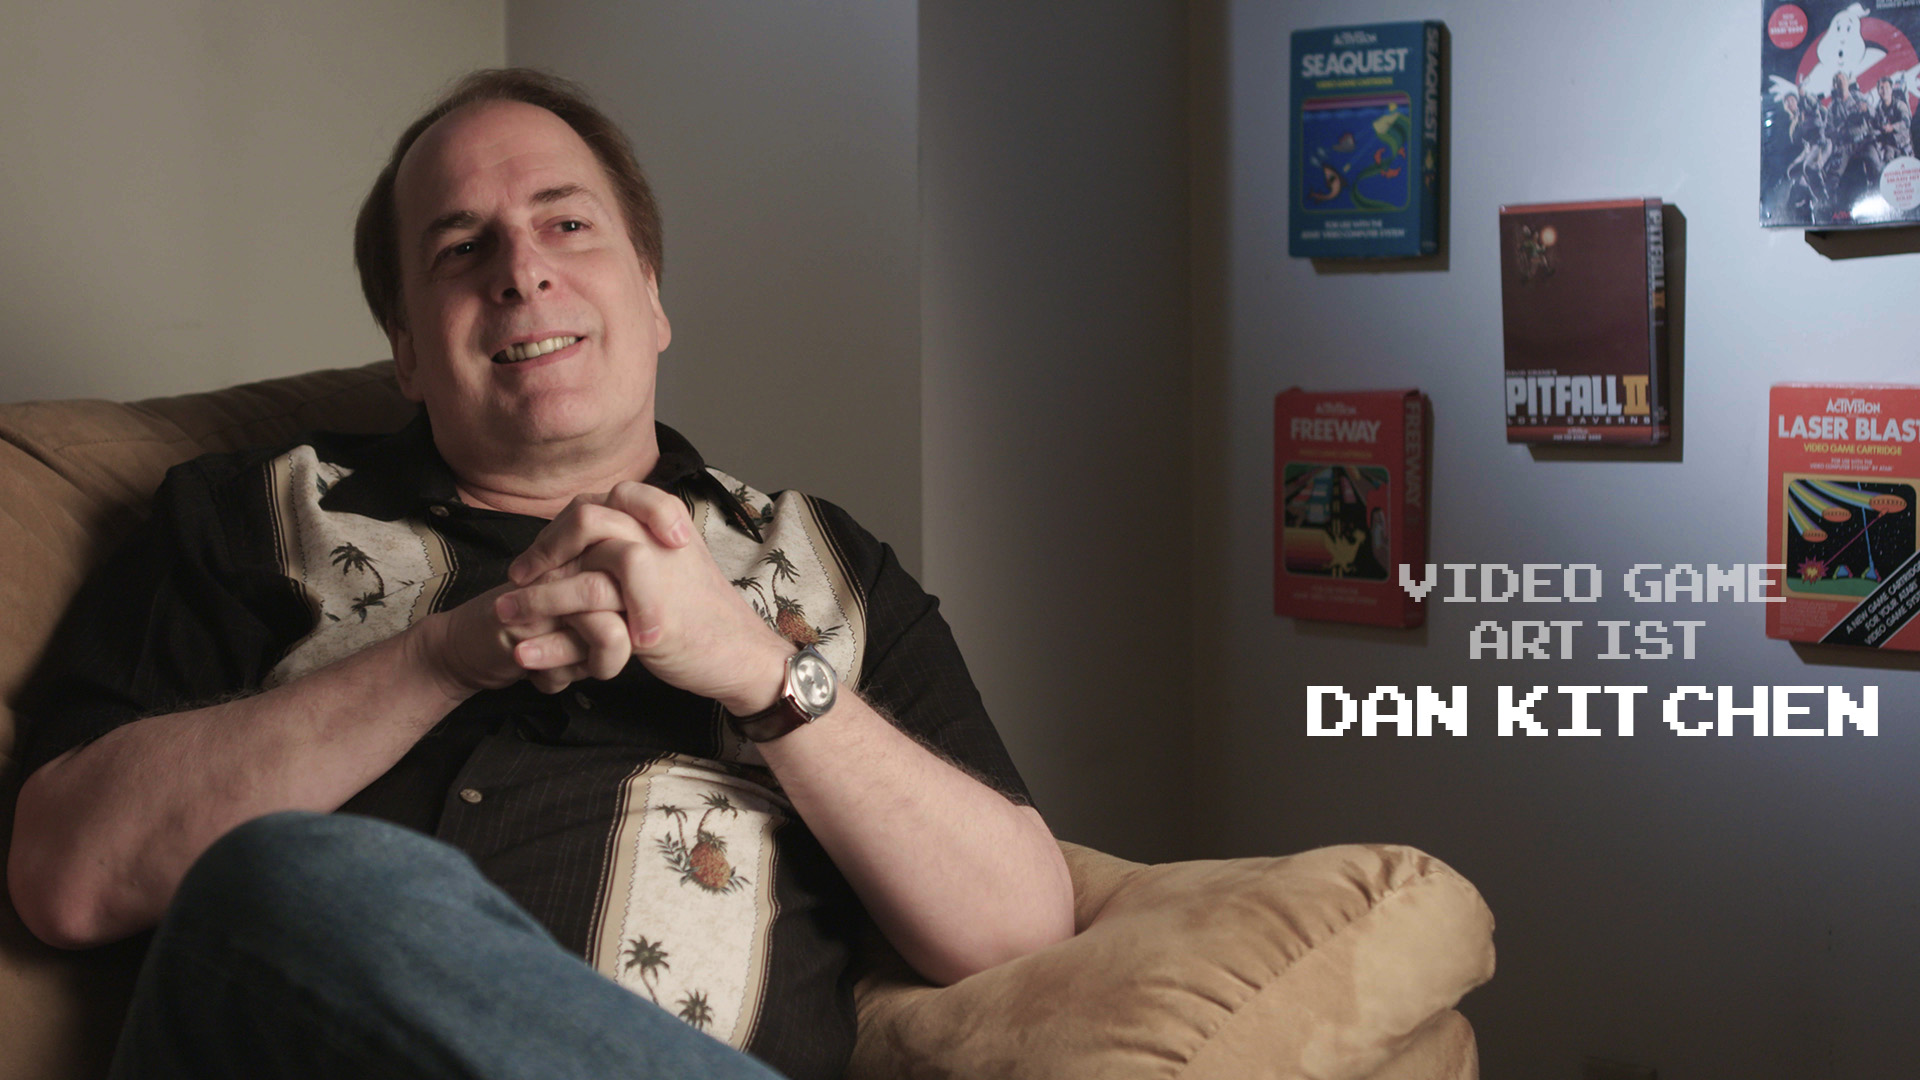 Video Game Artist Dan Kitchen